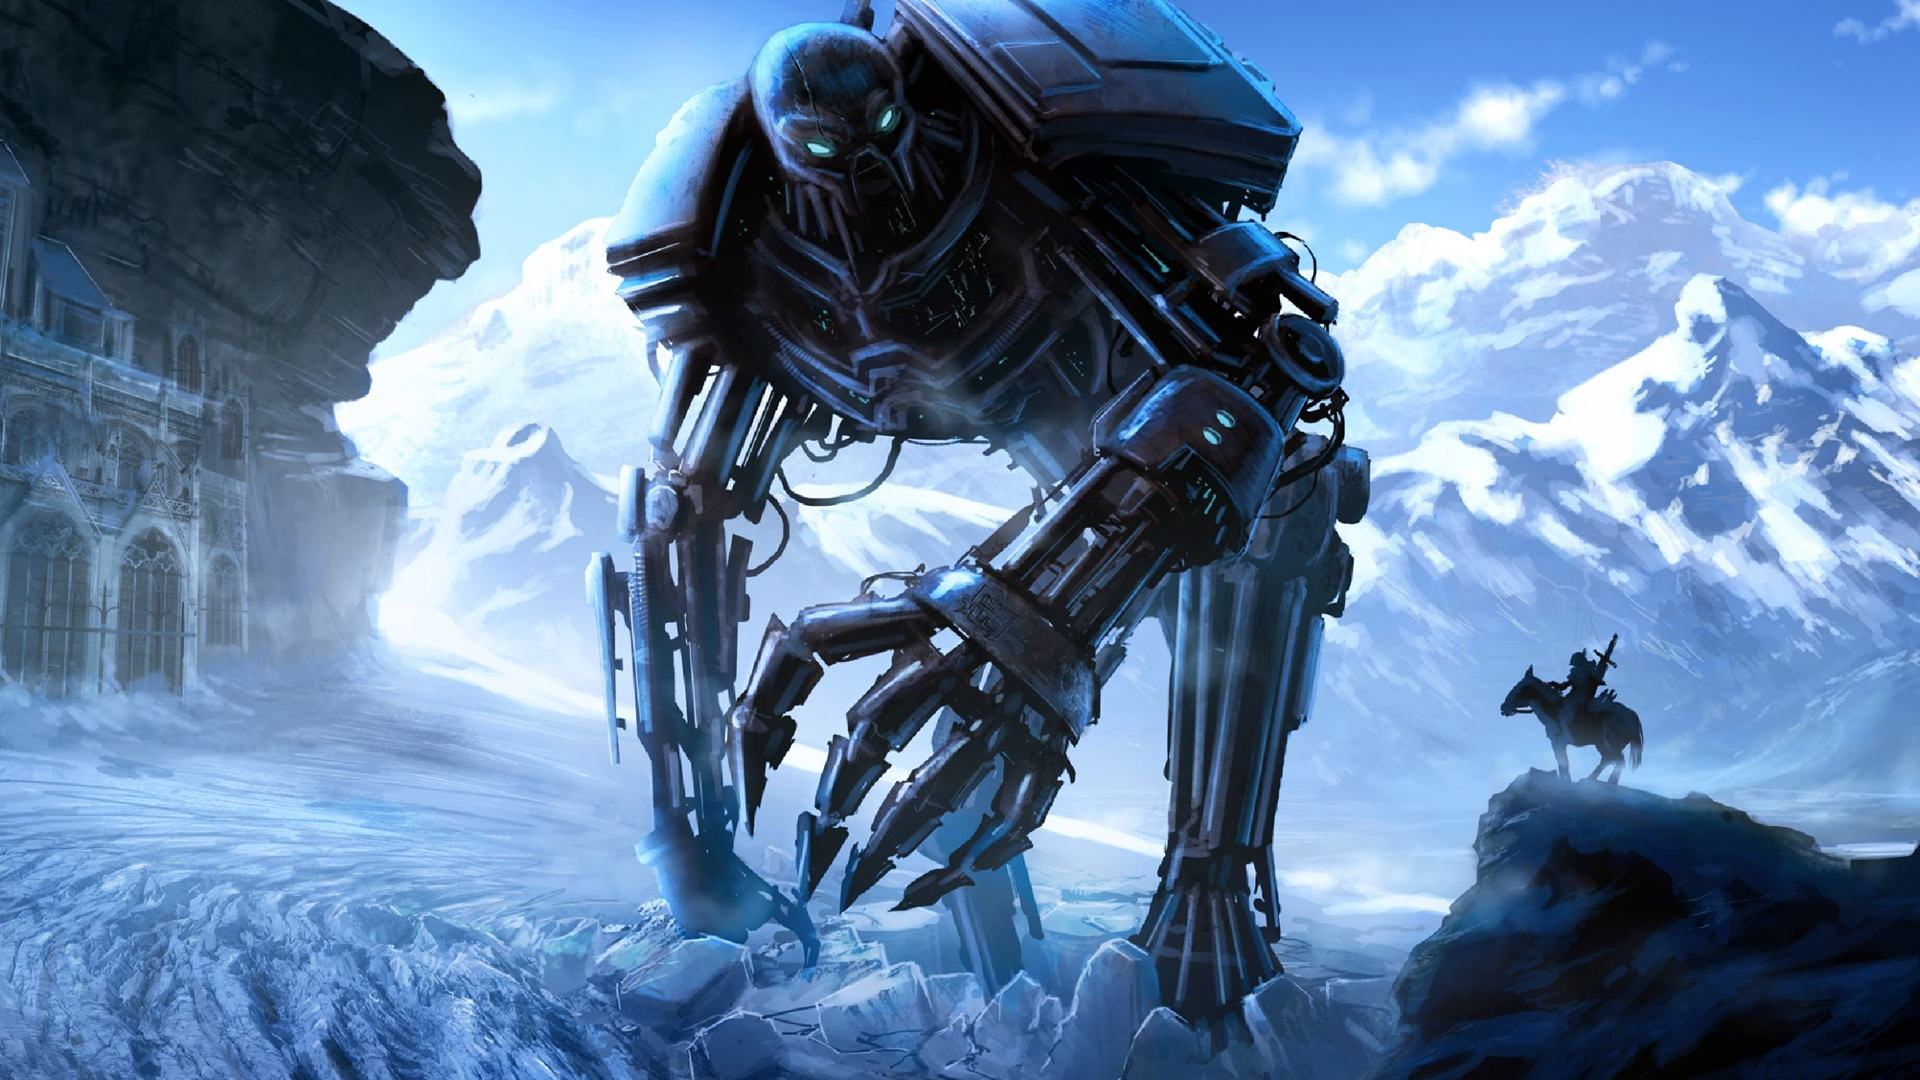 Robot High Definition Wallpaper - Wallpaper, High ...